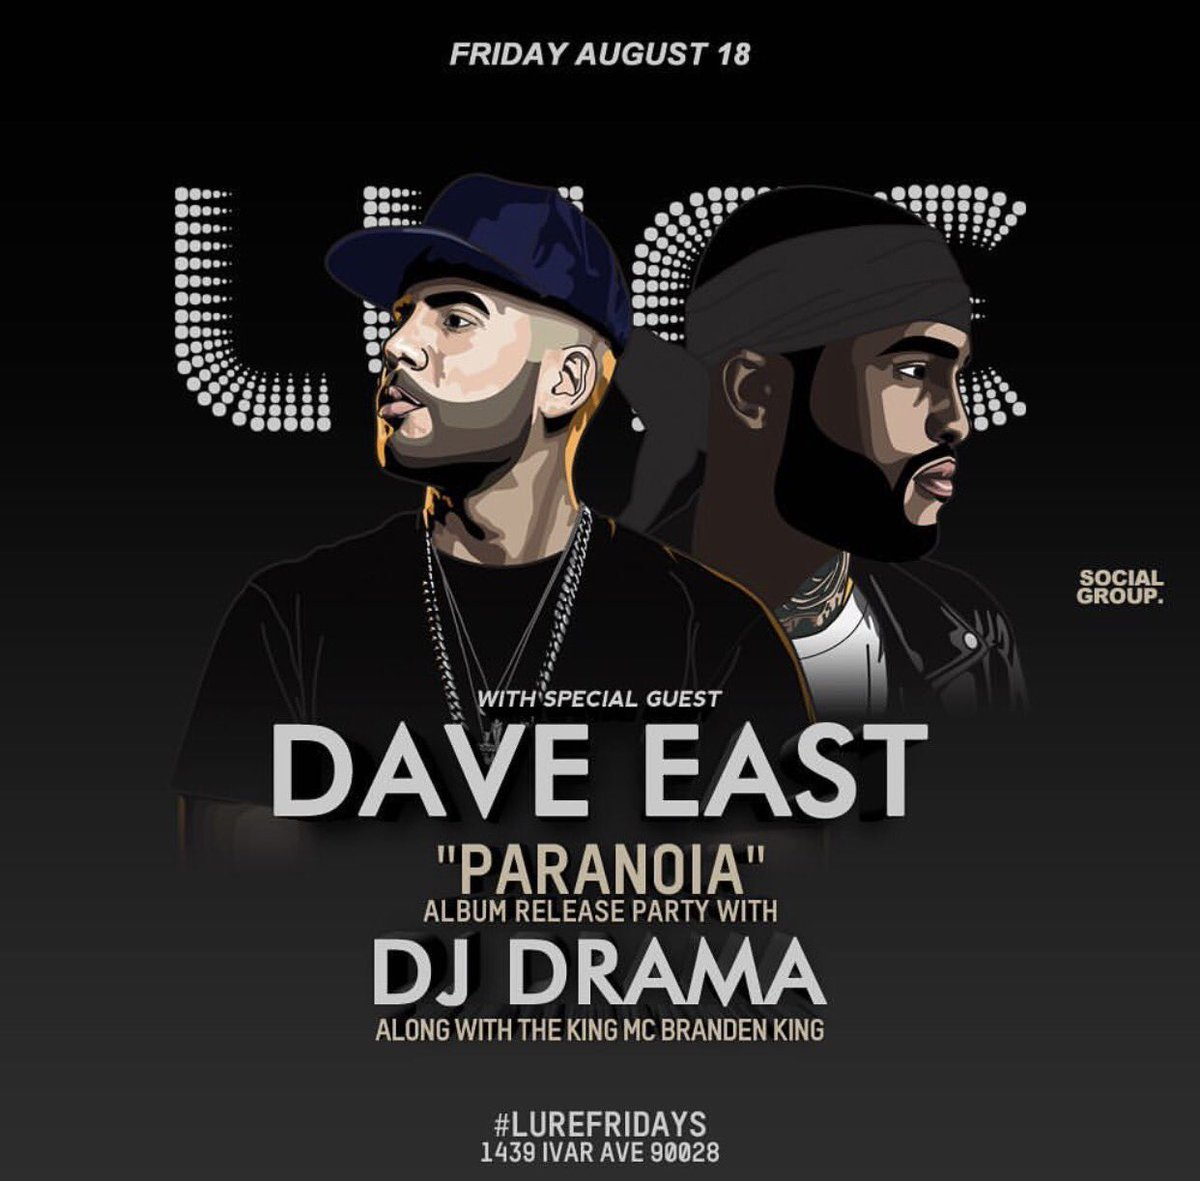 #LureFridays @DaveEast and Yours truly 🔥🔥🔥#Paranoia Release Party http...